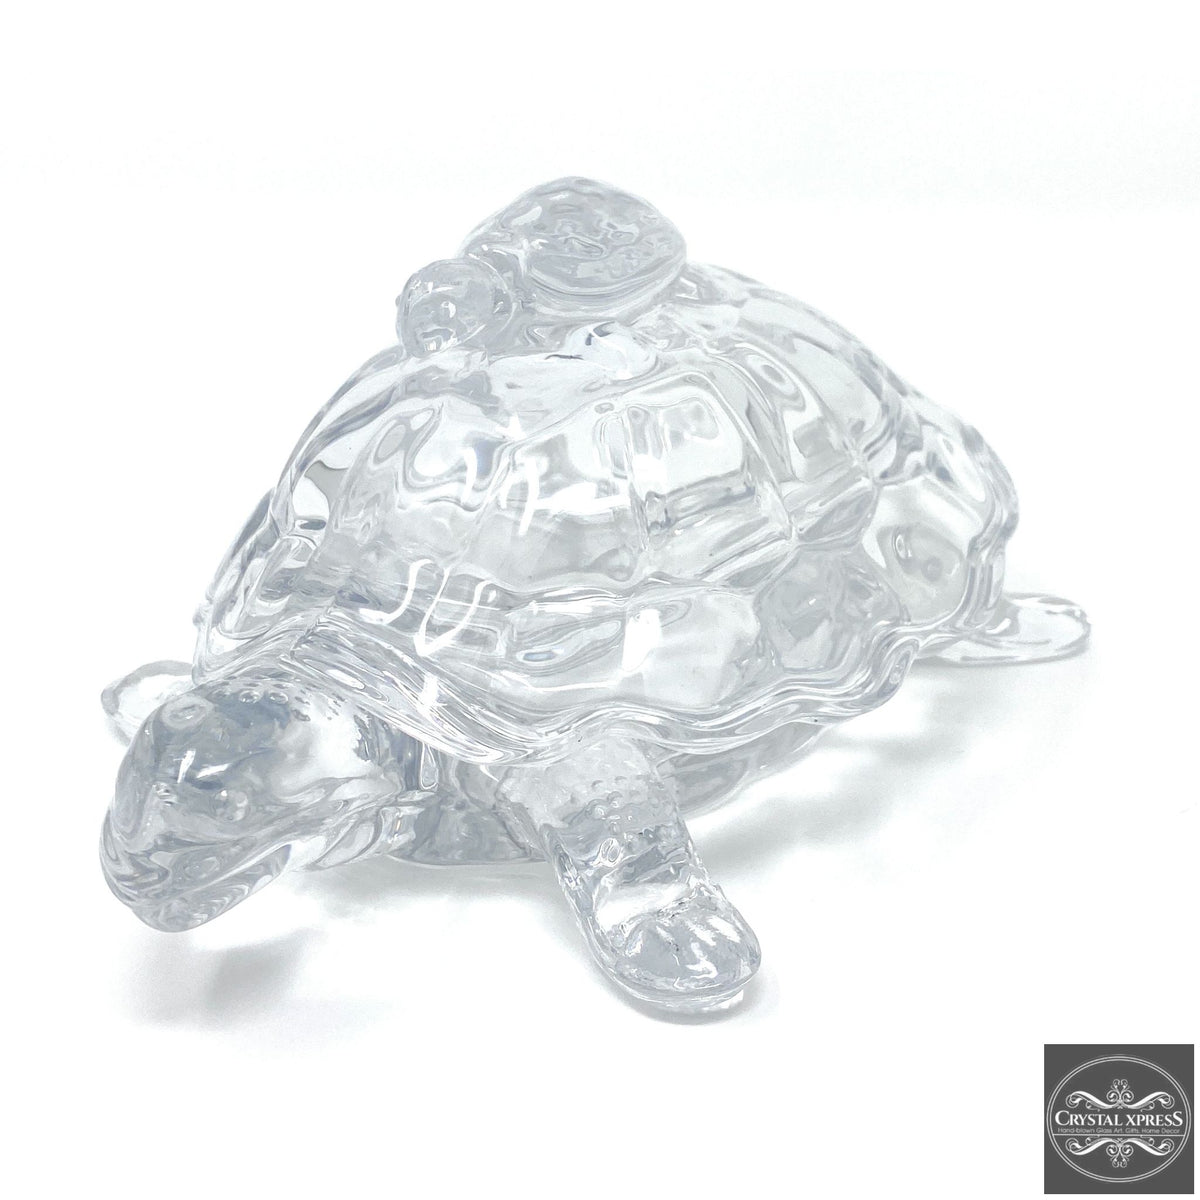 "New 7"" Hand Blown Glass Turtle with Mini Turtle On The Top Sculpture Figurine Back Can Be Open as a Gift BoxCrystal Xpress"